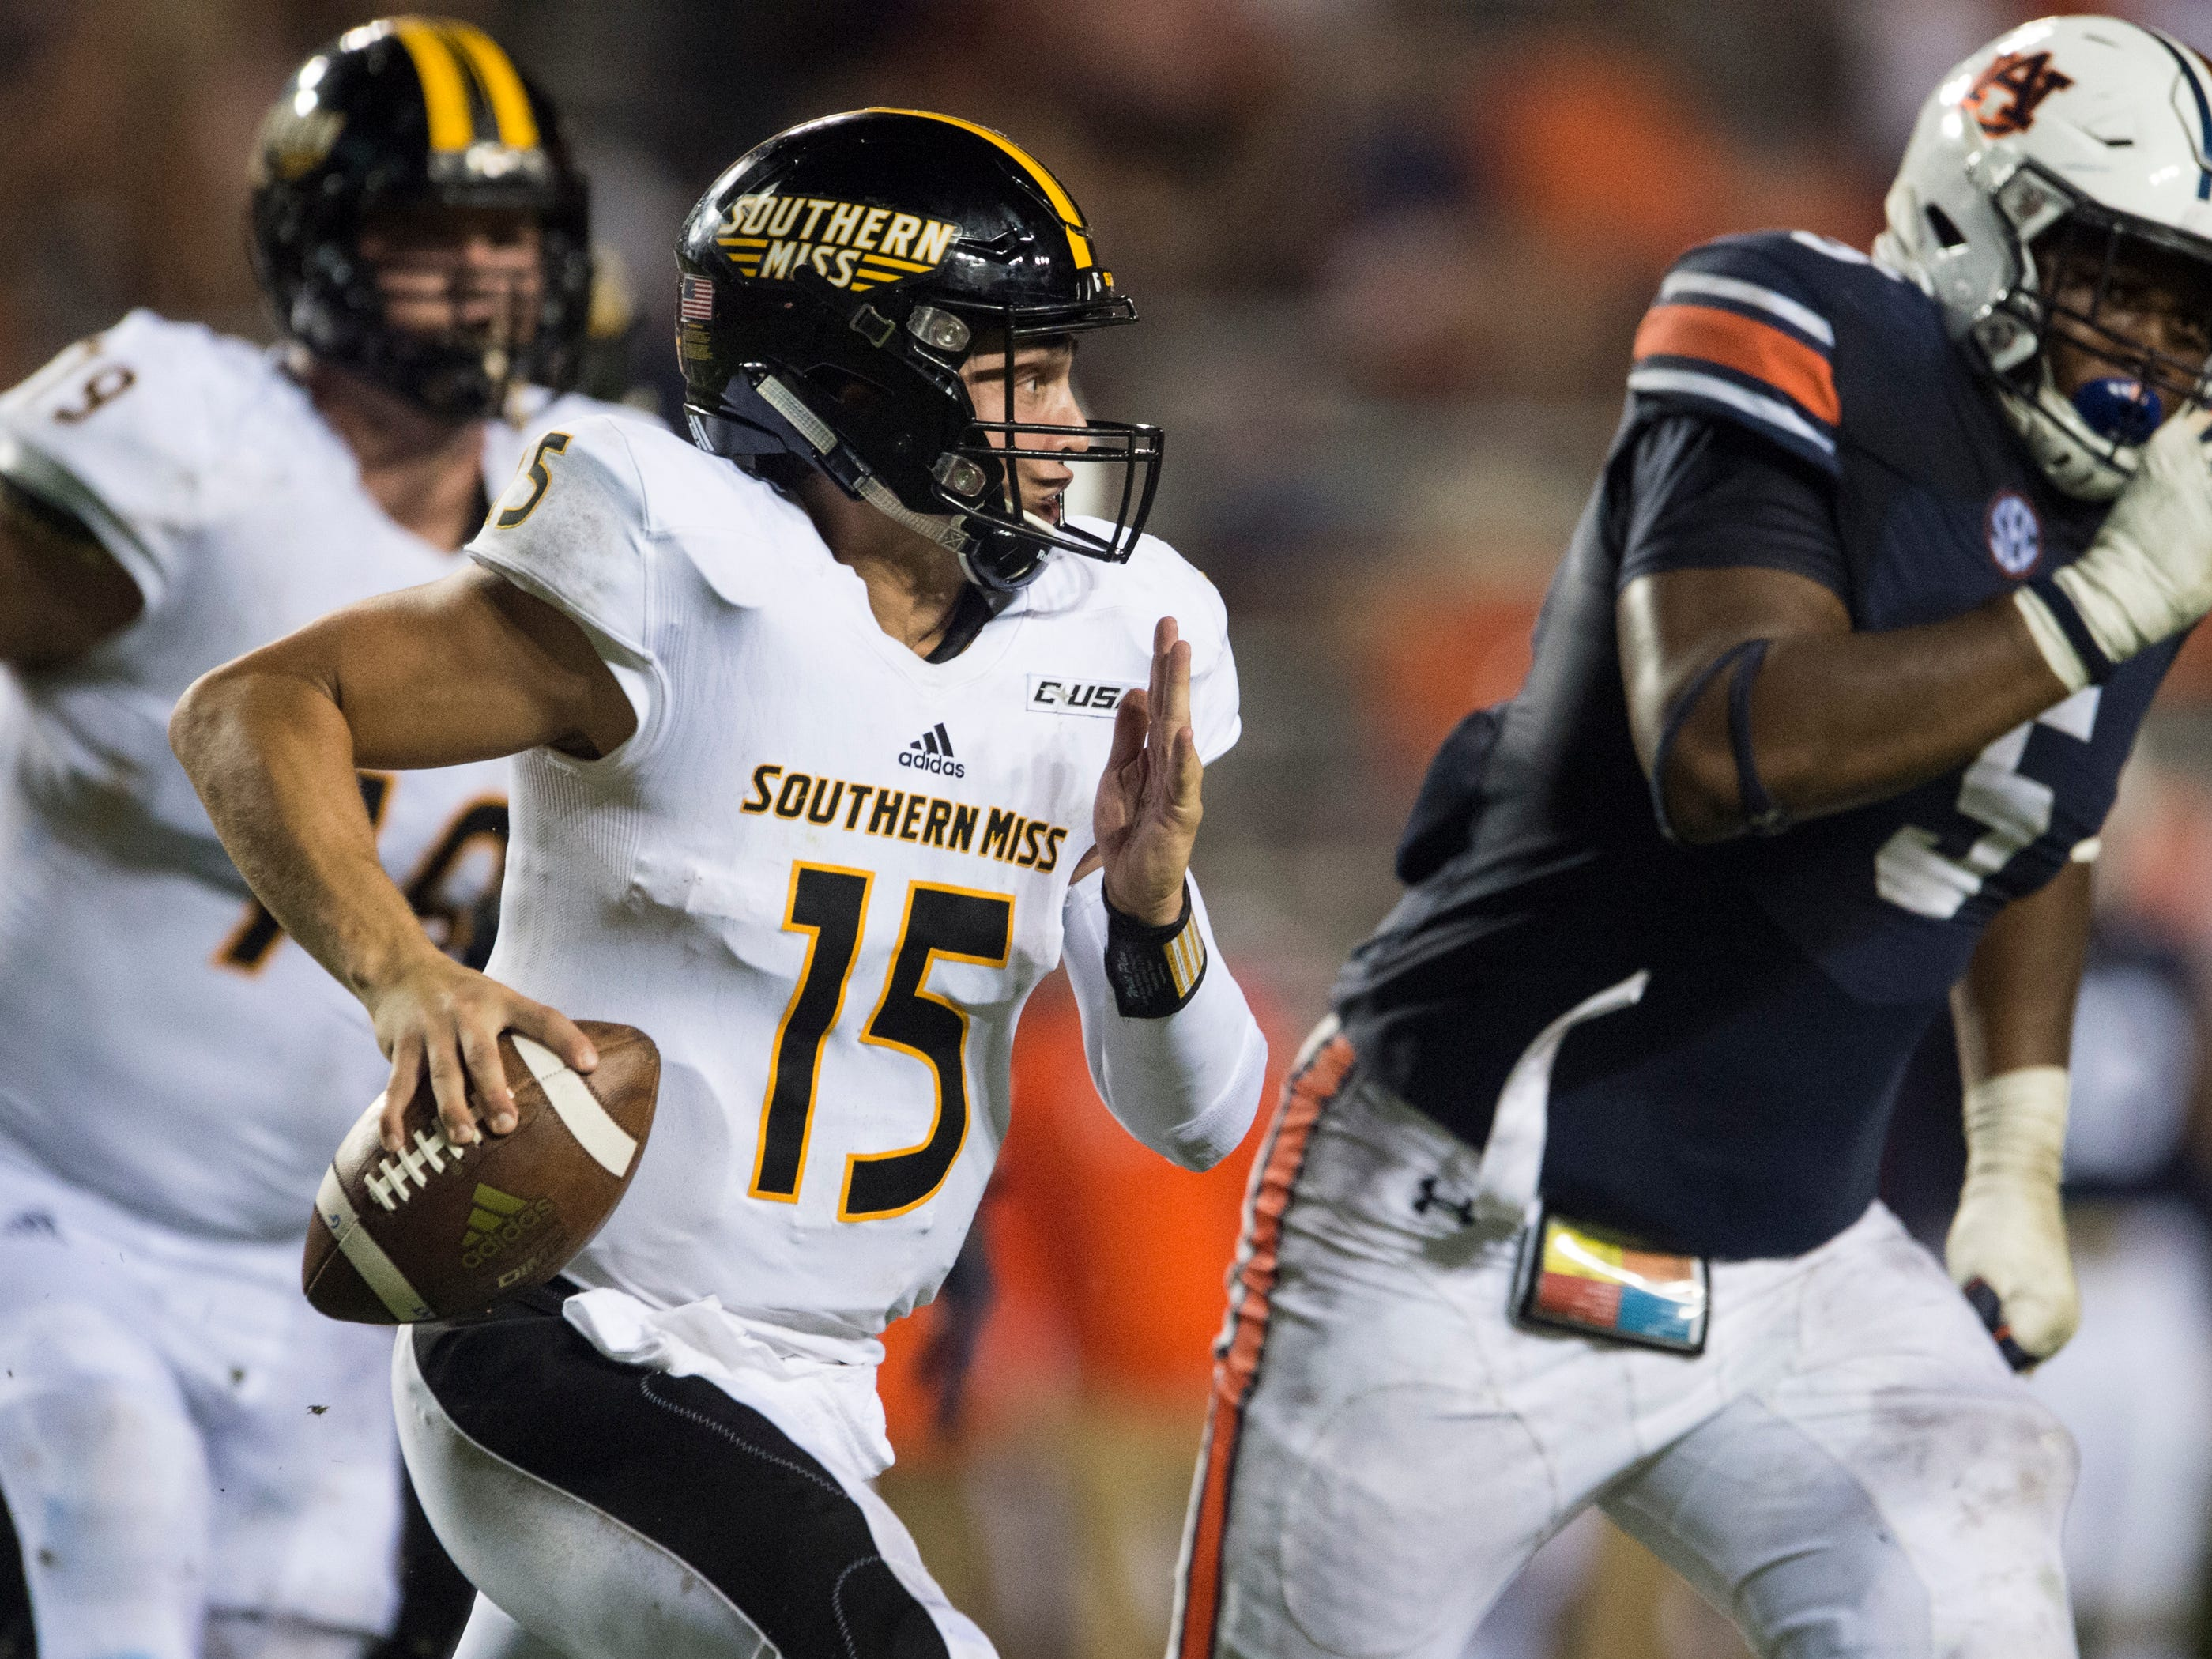 Southern Miss' Jack Abraham (15) scrambles out of the pocket pressured by Auburn's Derrick Brown (5) at Jordan-Hare Stadium in Auburn, Ala., on Saturday, Sept. 29, 2018. Auburn defeated  Southern Miss 24-13.